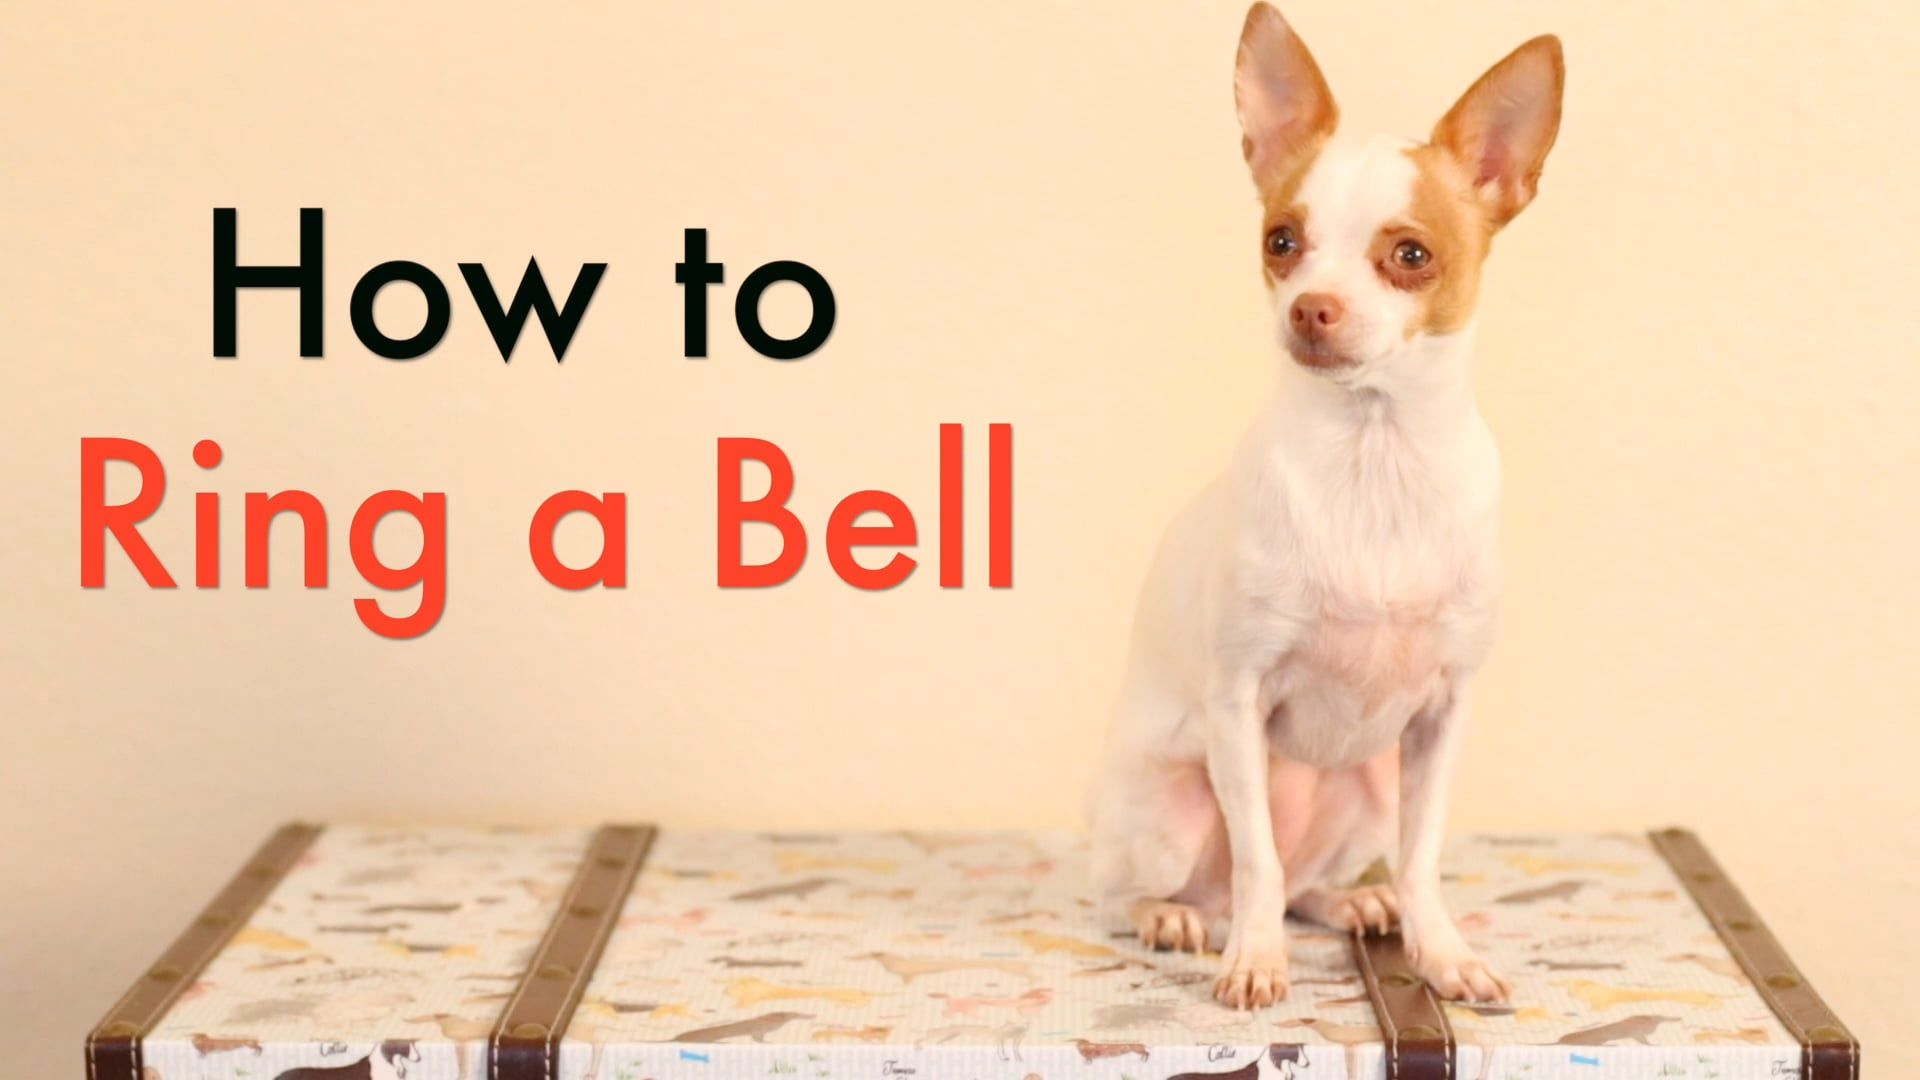 Train your dog how to ring a bell